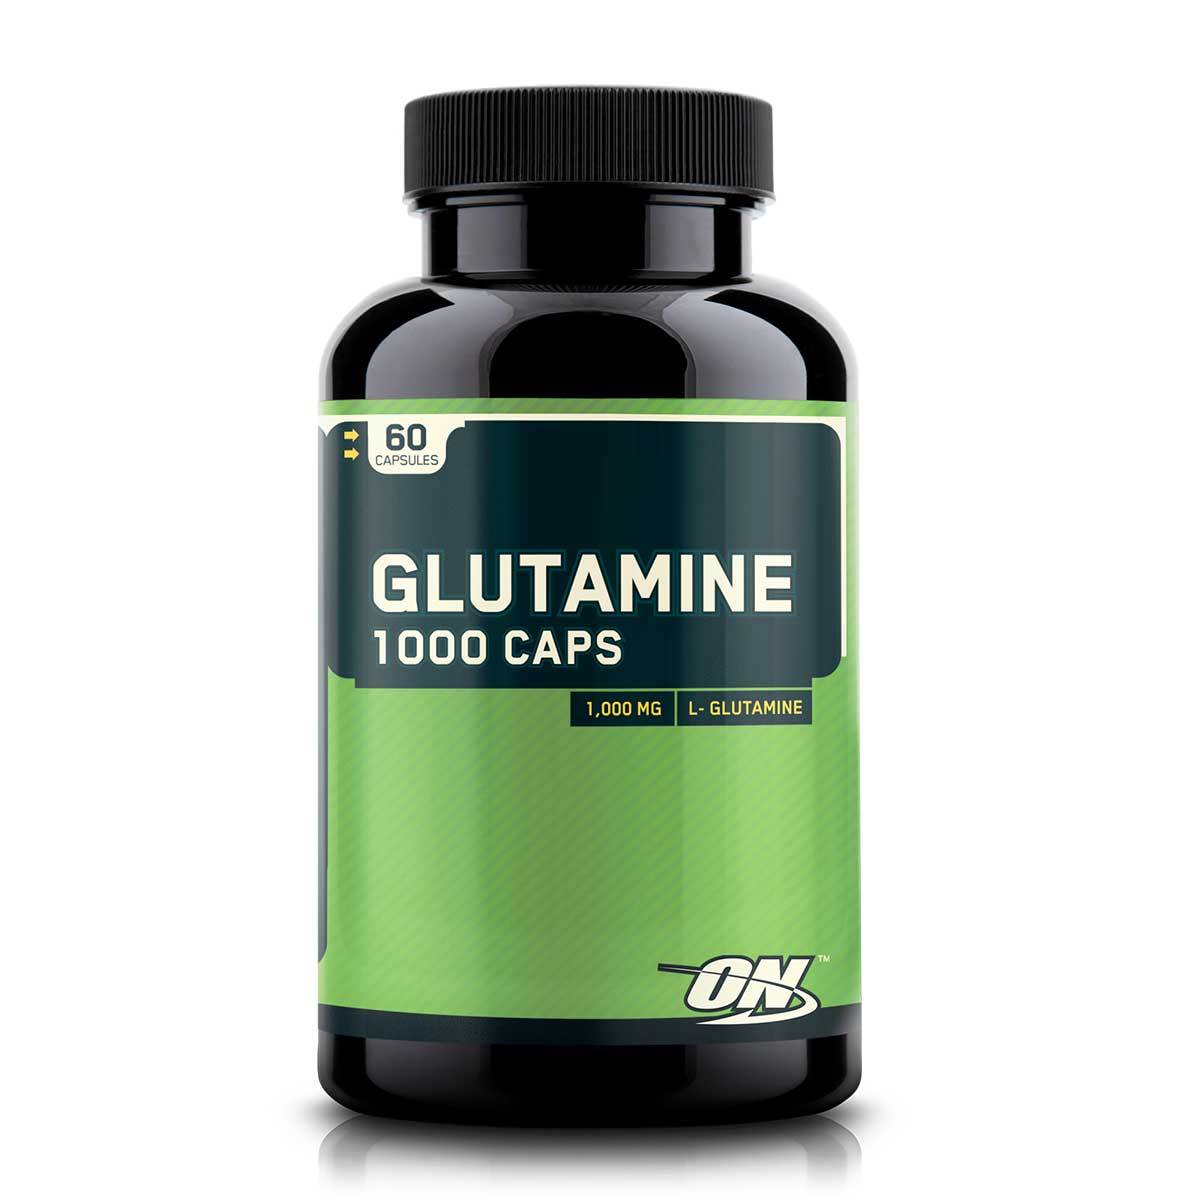 Optimum Nutrition Glutamine Caps 1000 60 caps Amino Acids Optimum Nutrition  (1057917206571)